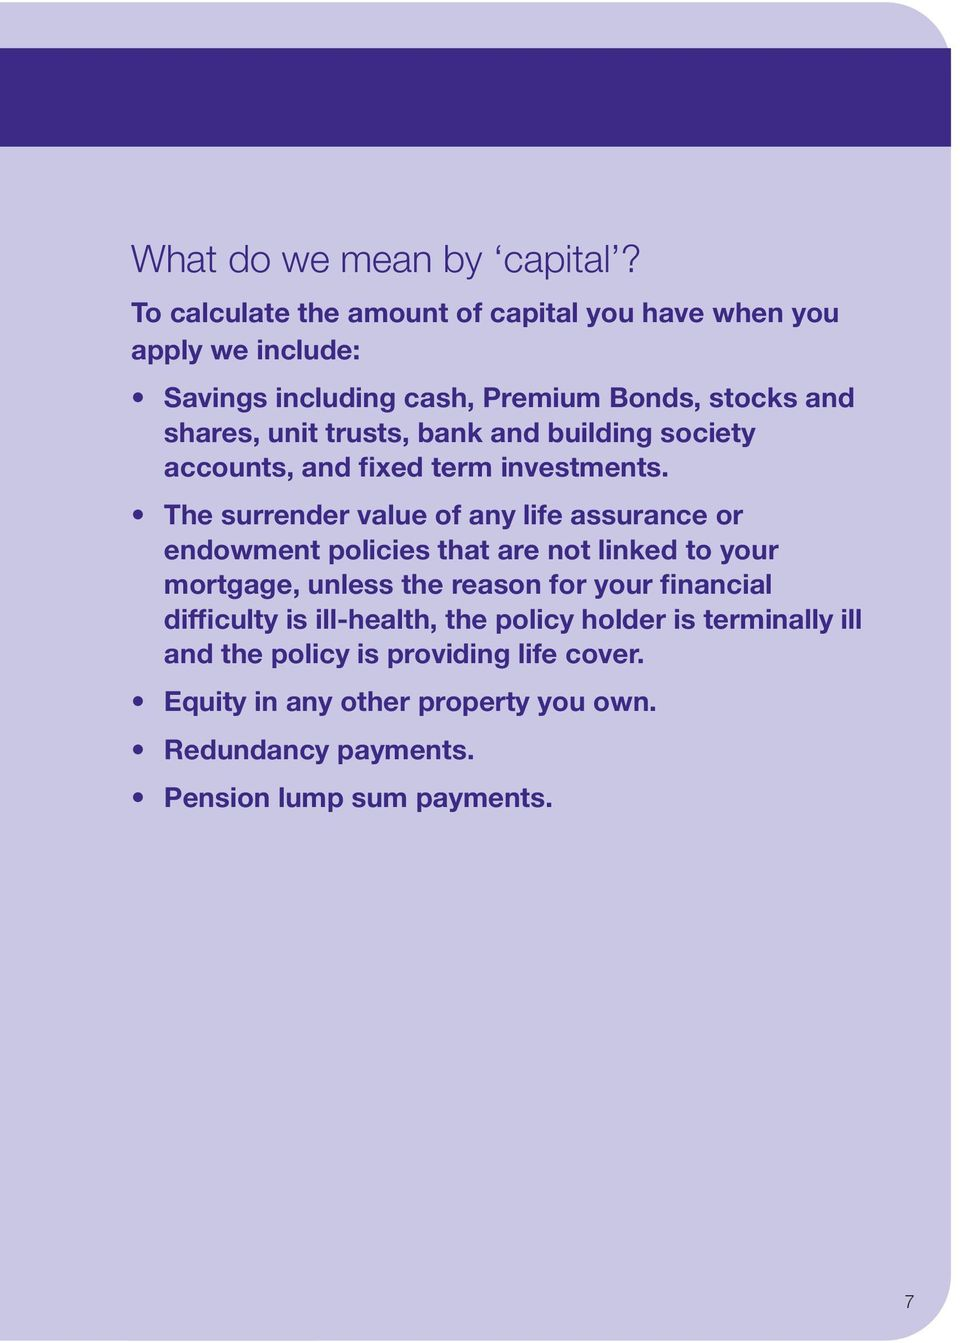 trusts, bank and building society accounts, and fixed term investments.